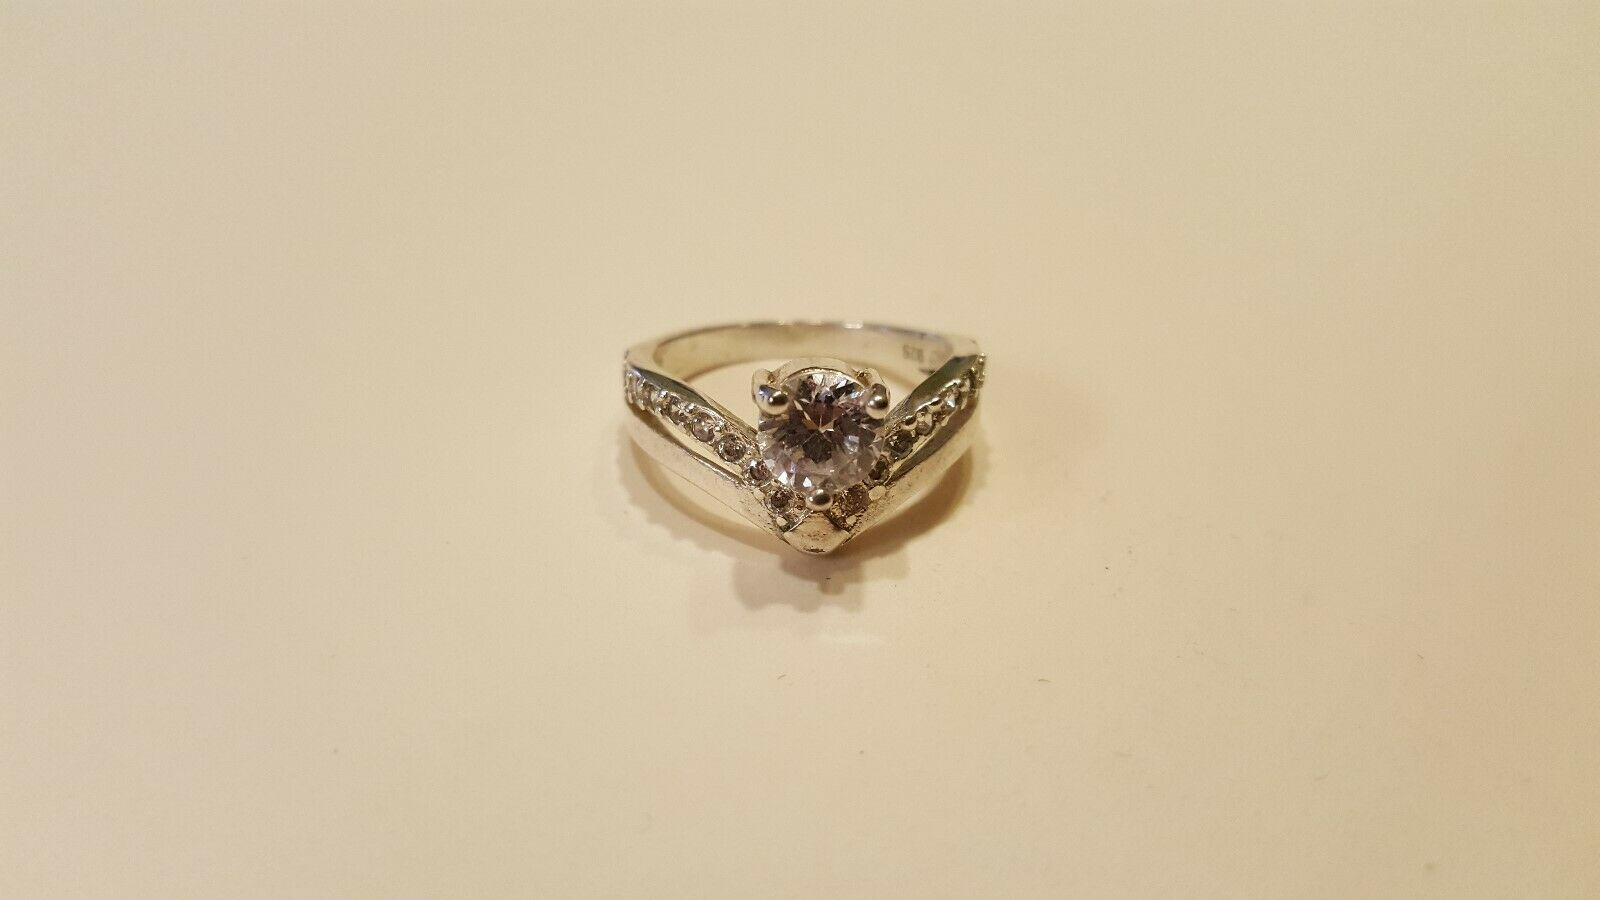 Primary image for Antique Vintage Sterling Silver 925 Ring Size 6.5 / Cubic Zirconia